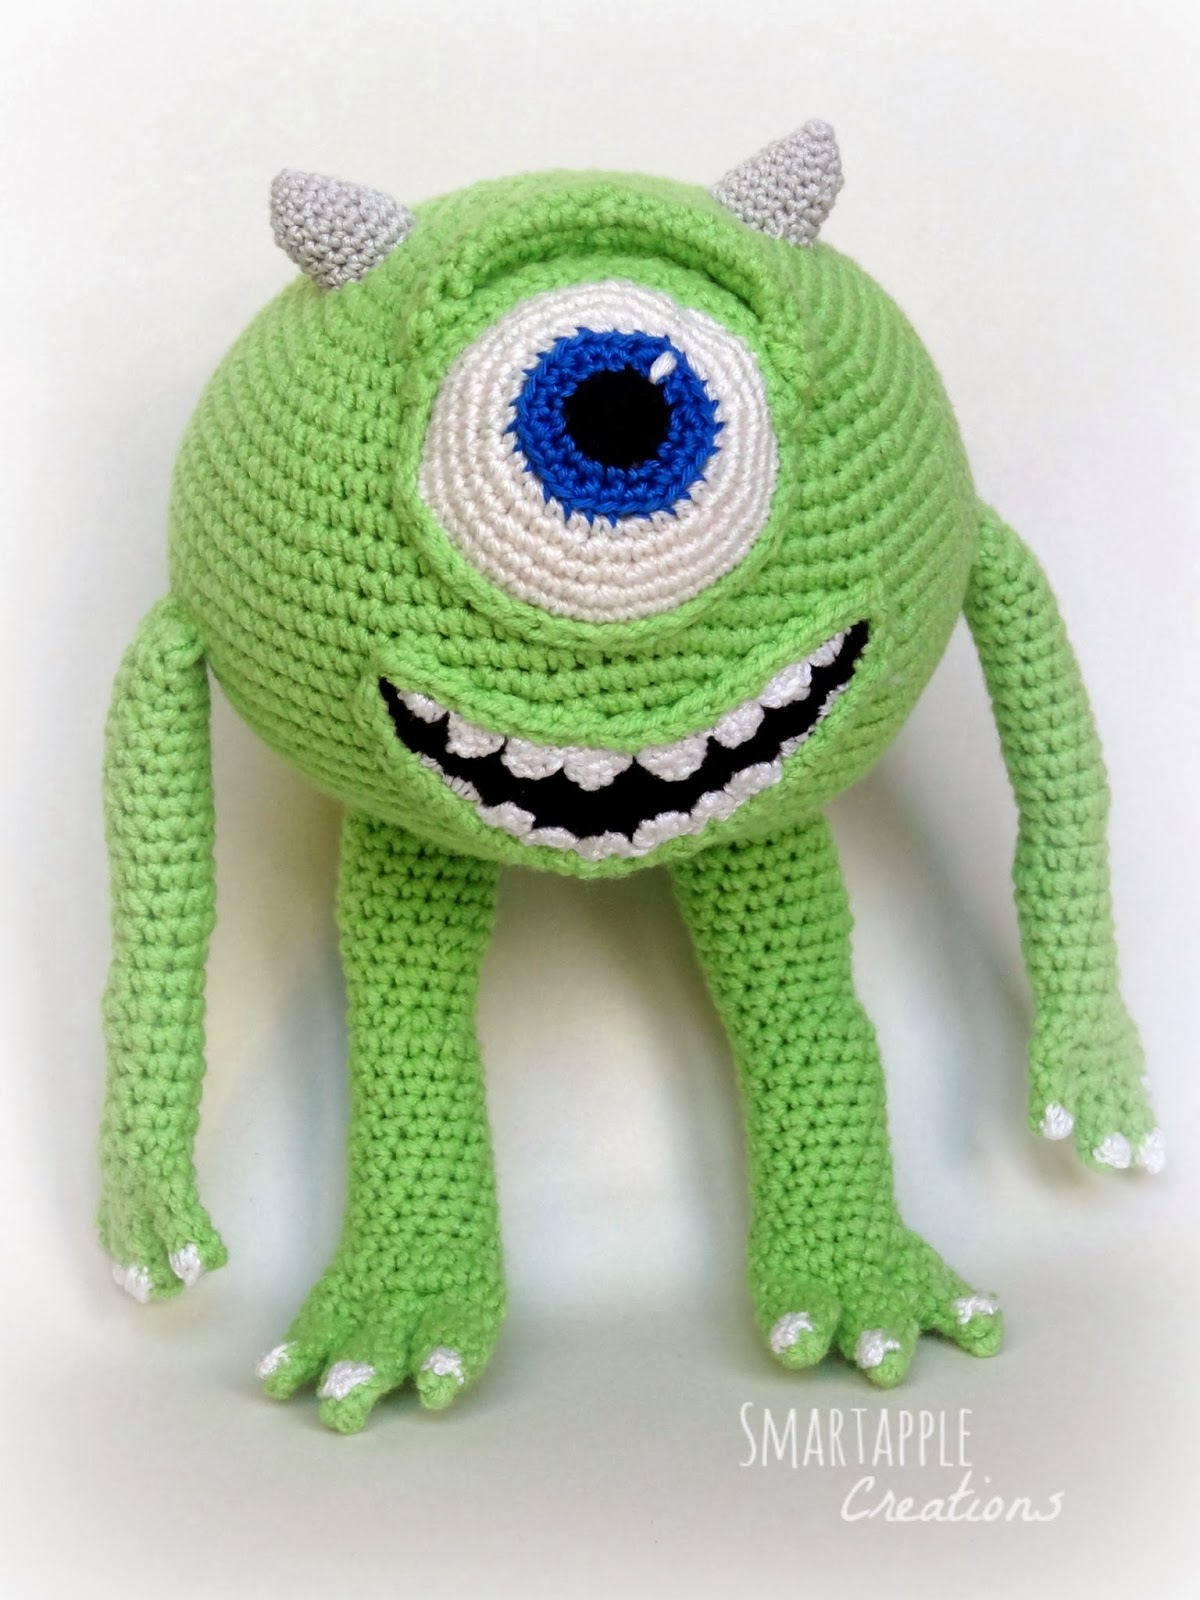 Amigurumi Monsters Inc : Smartapple Creations - amigurumi and crochet: Amigurumi ...